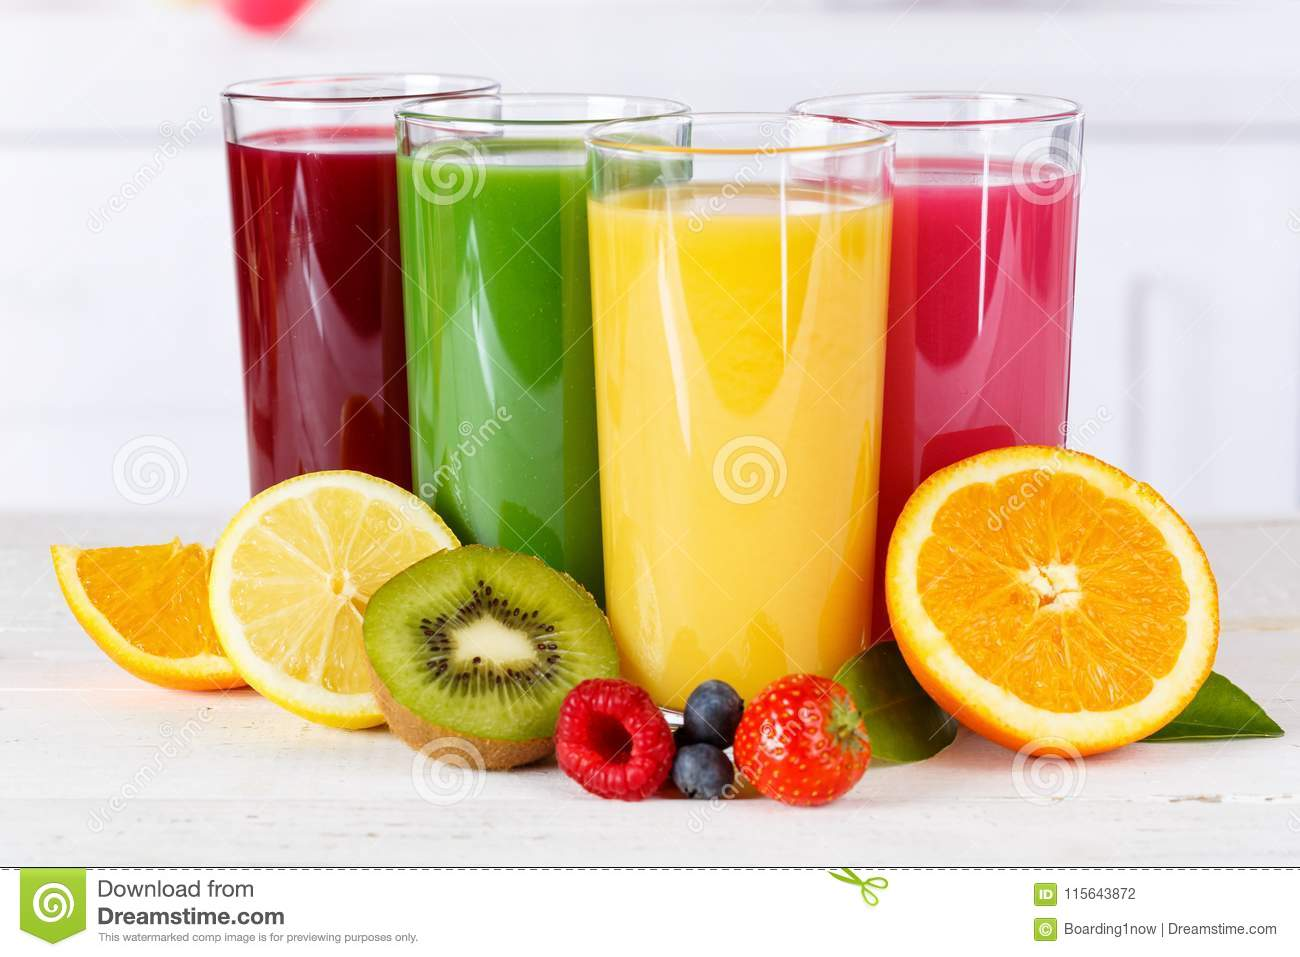 Juice smoothie smoothies orange oranges fruit fruits healthy eat